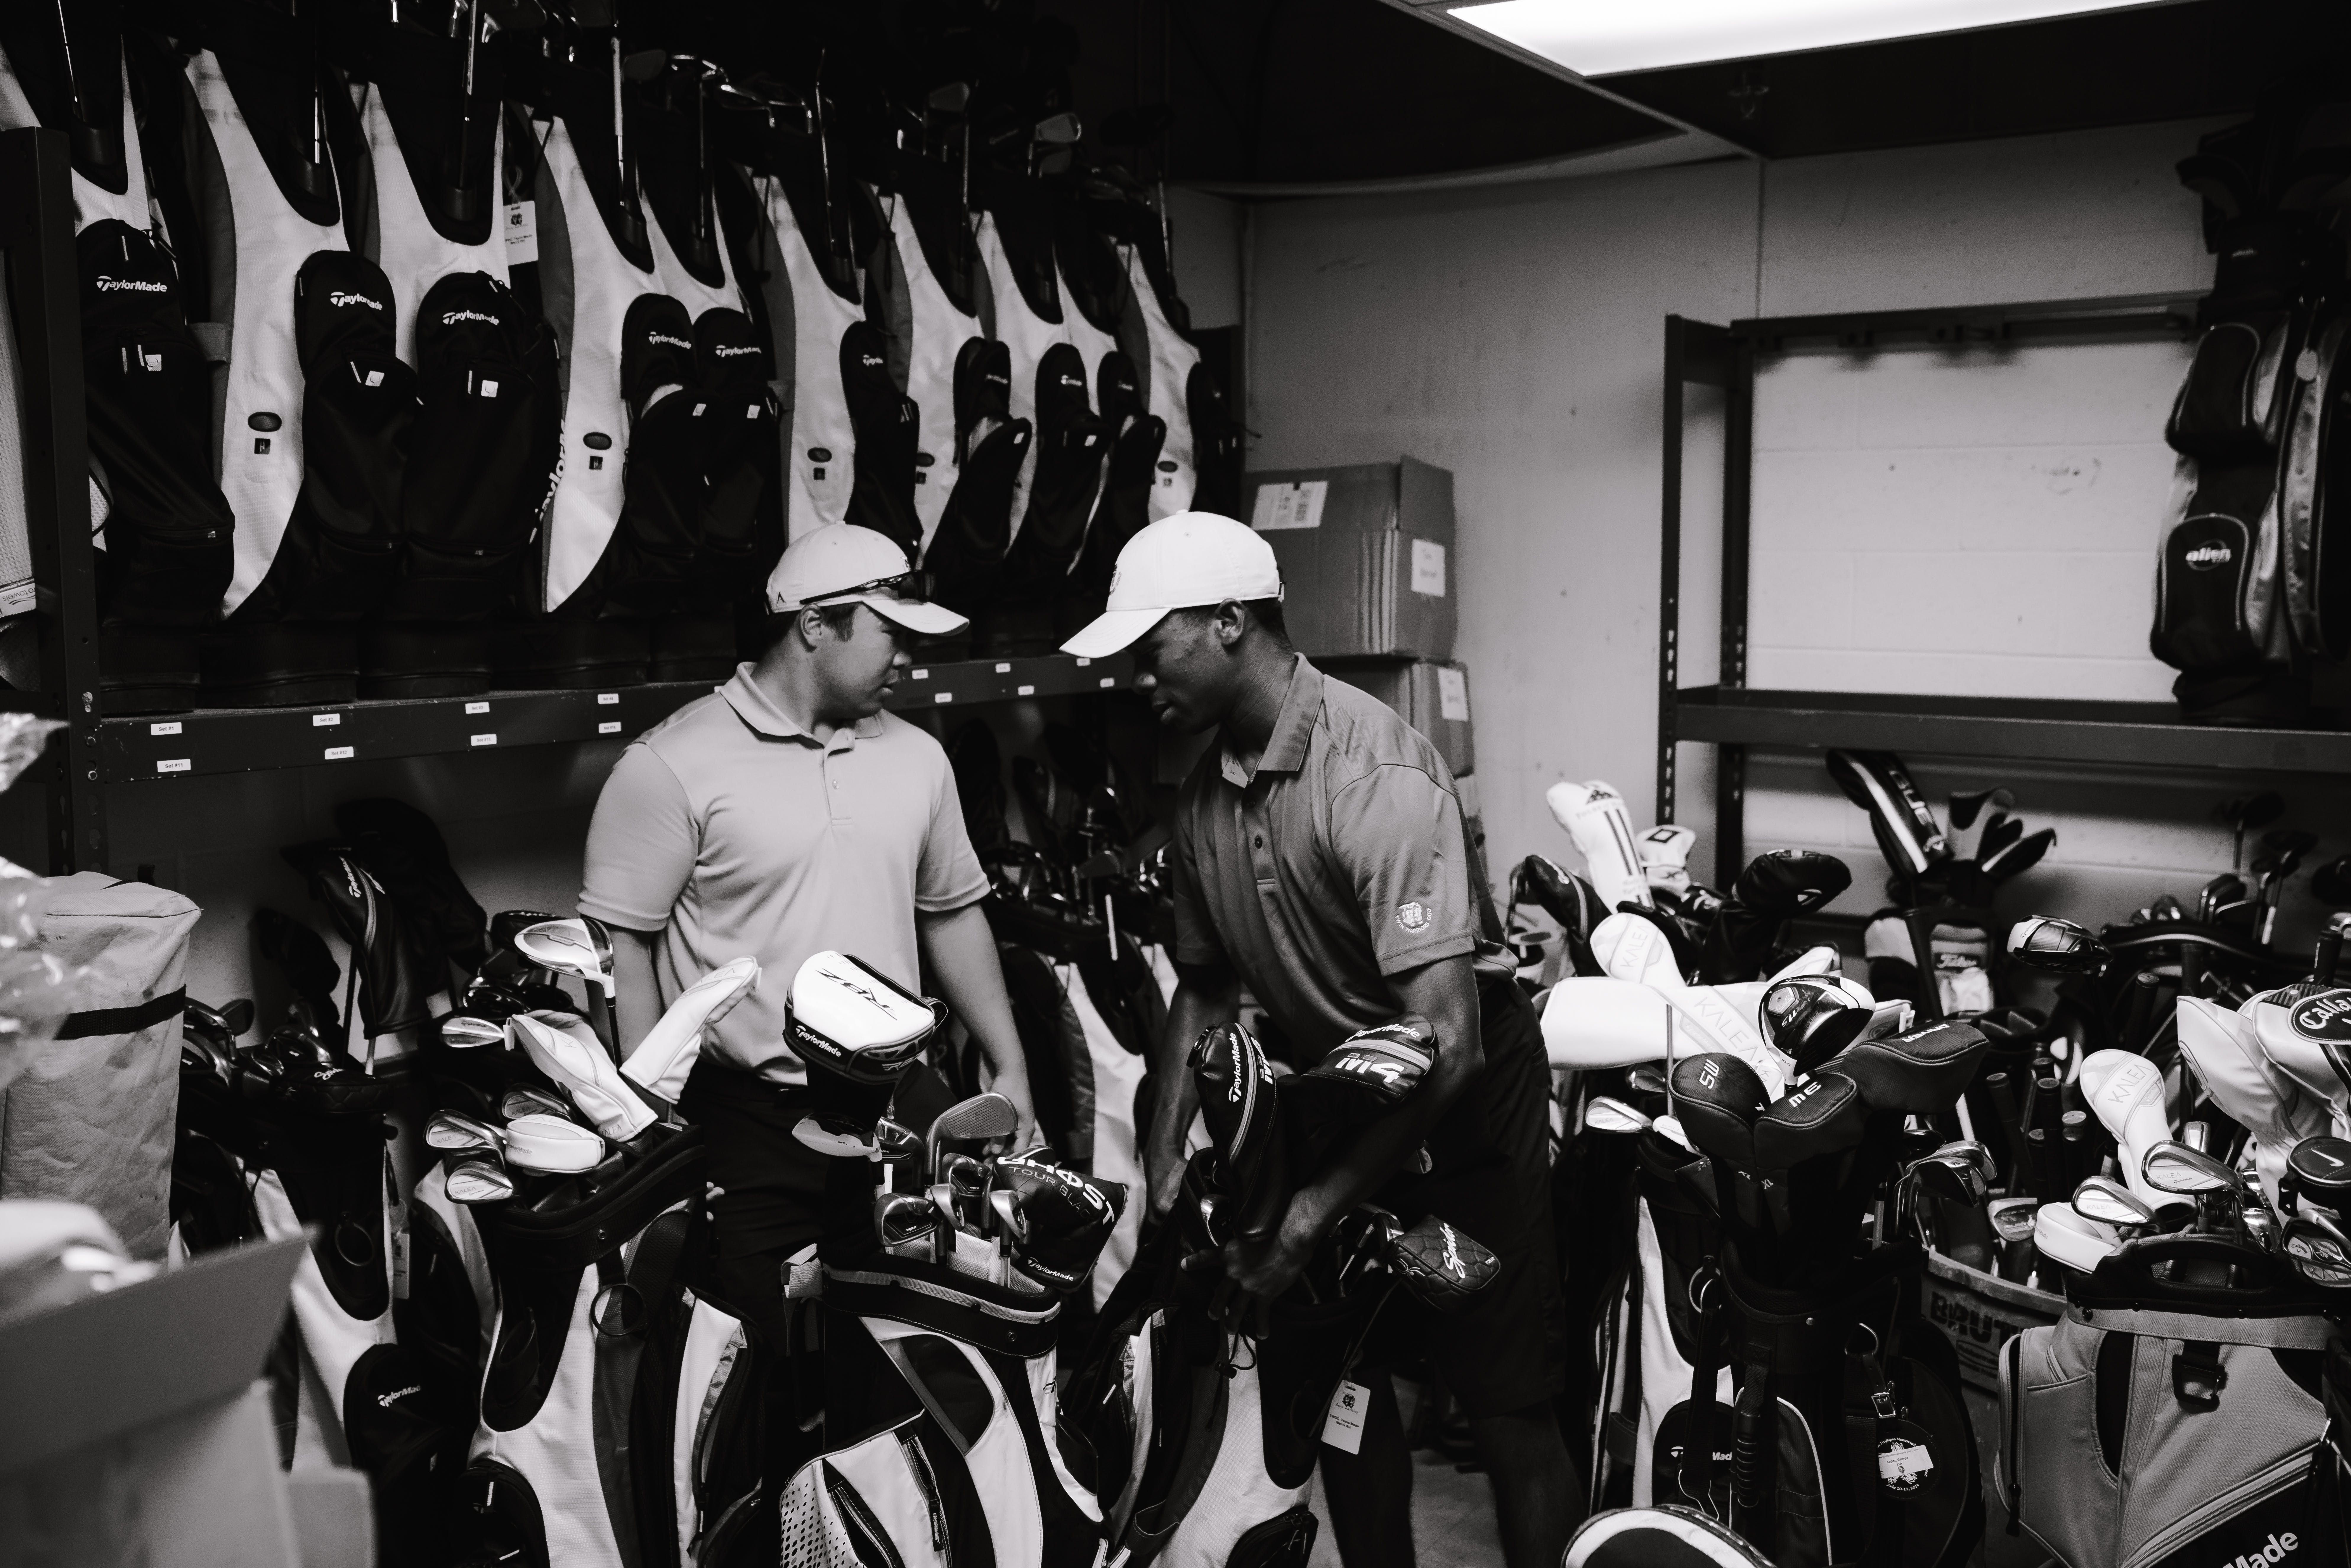 Grayscale Photography Of Men Surrounded By Golf Clubs